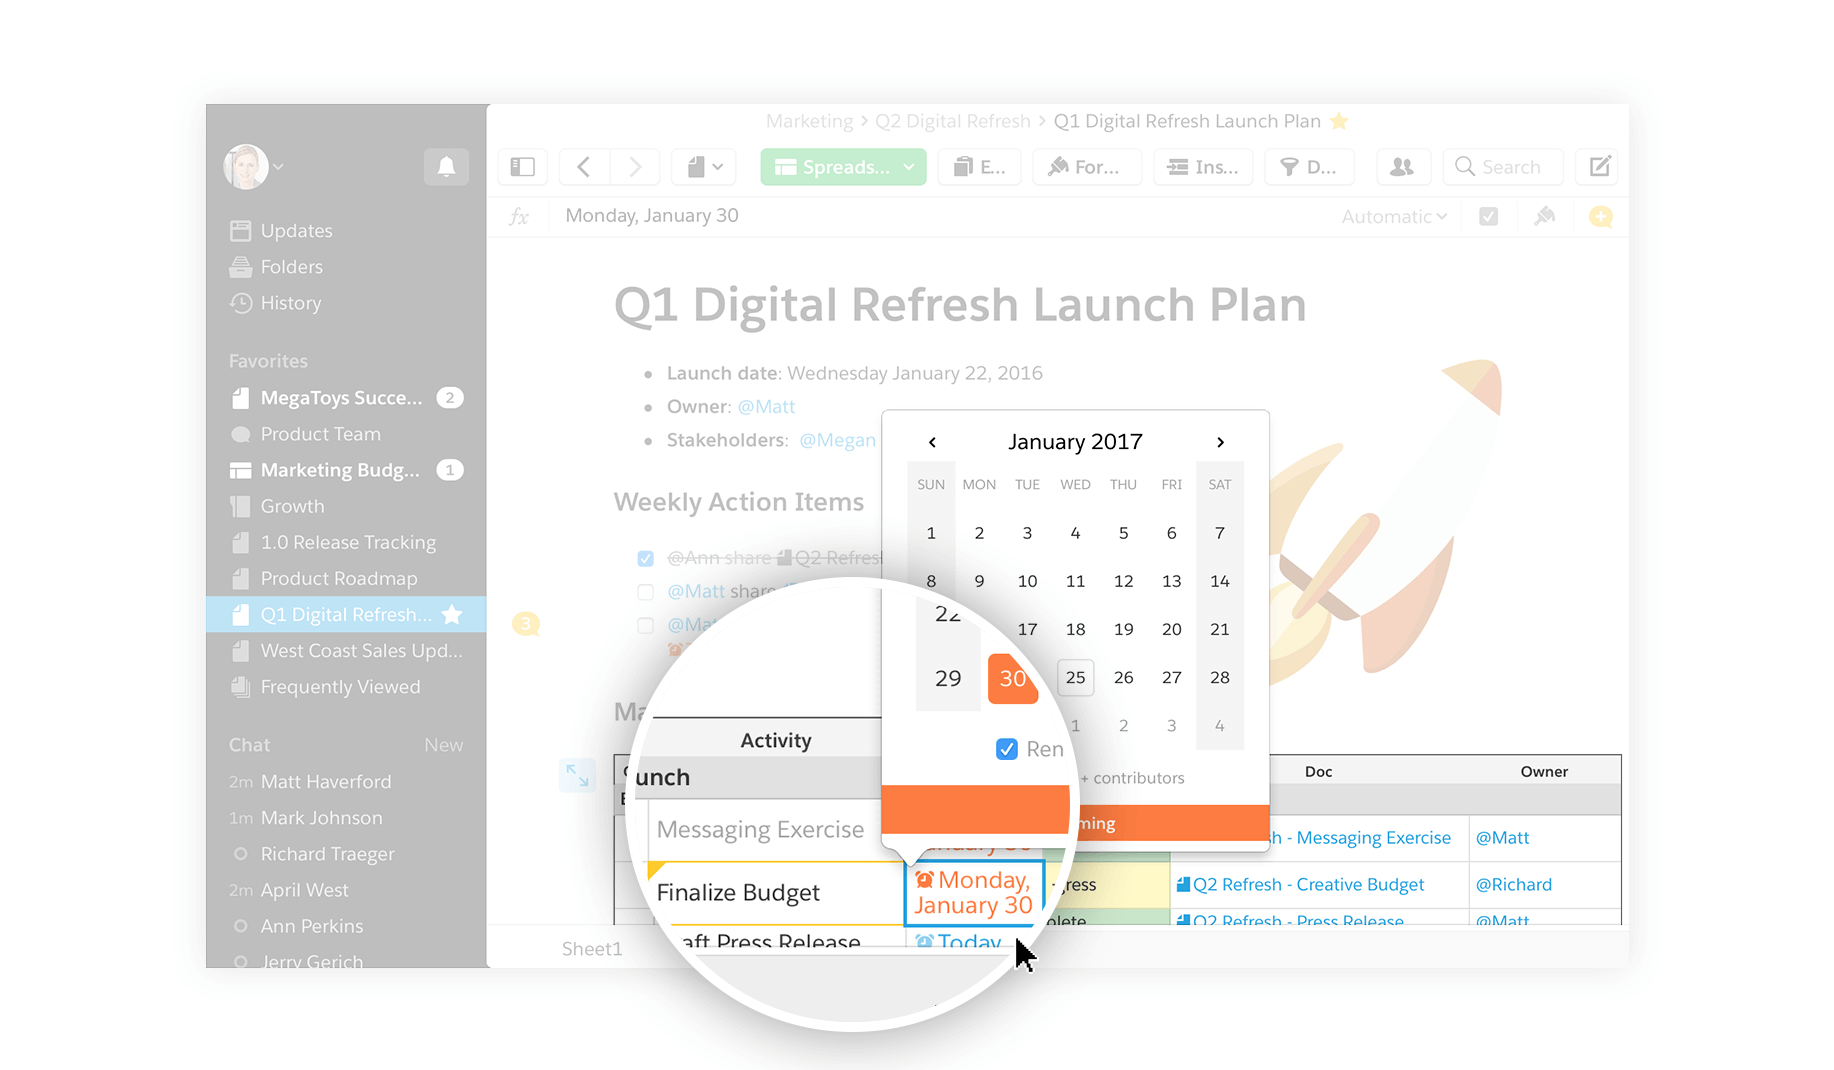 Quip reminders within checklists